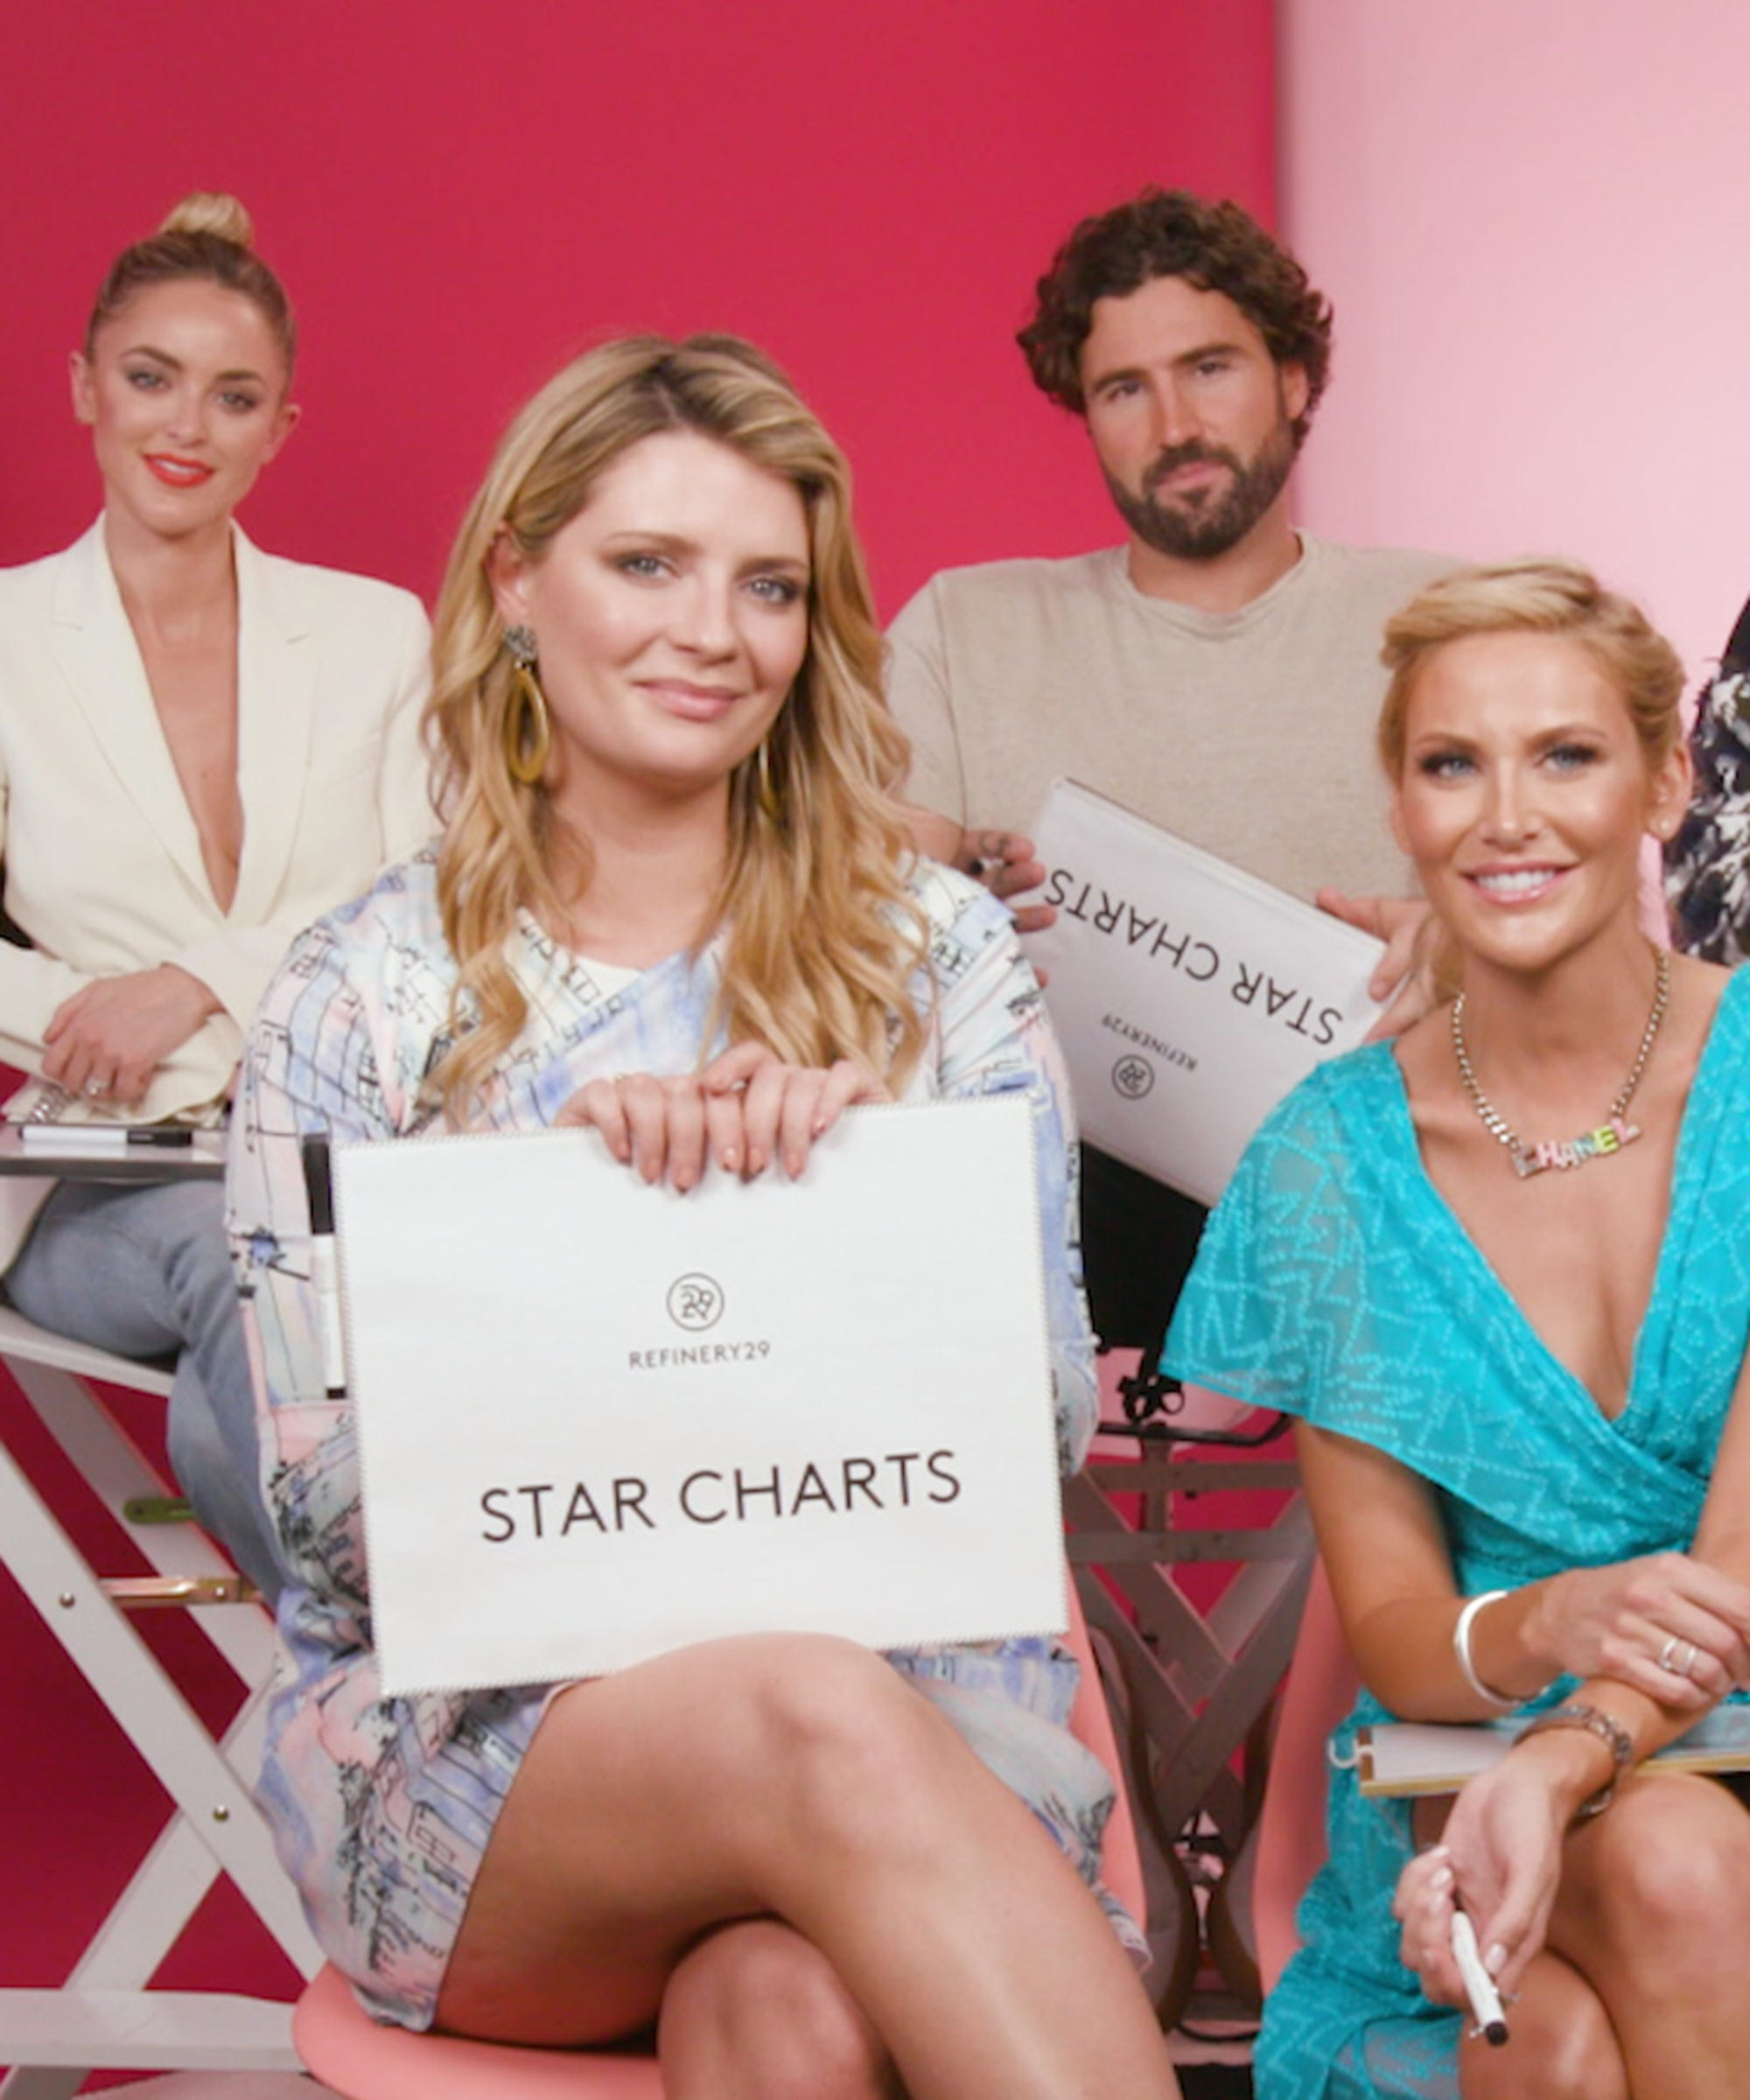 """Do """"The Hills"""" Reboot Cast's Star Charts Mean They're Fated For Drama?"""